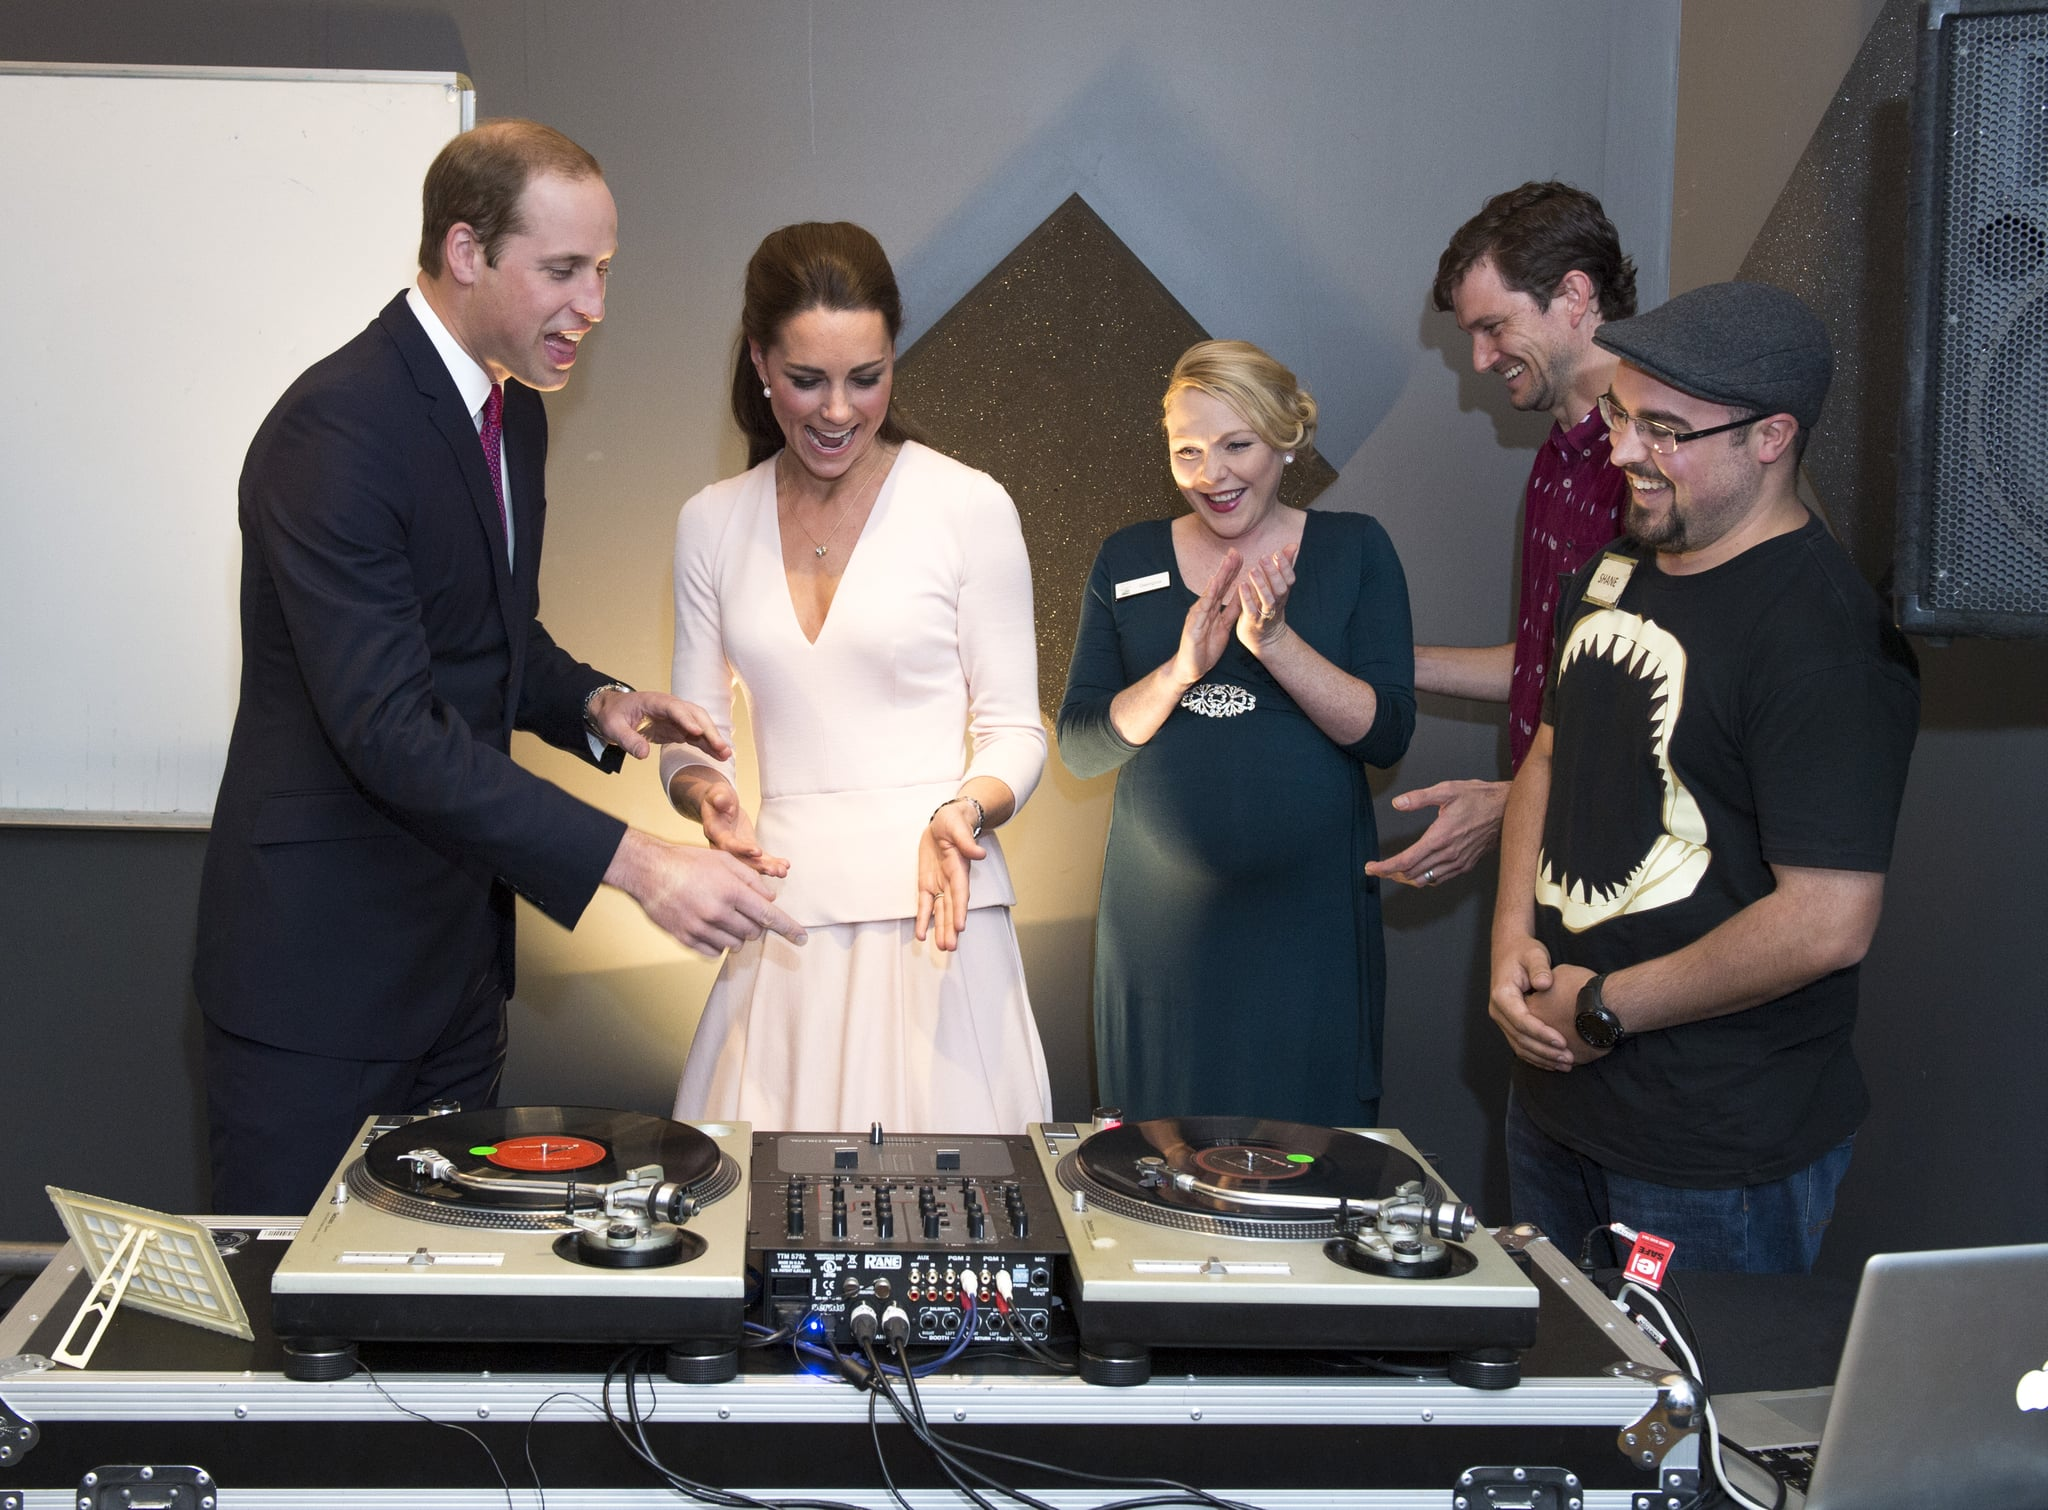 Kate put her DJ skills on display when she and William stopped by a youth center in Australia in April 2014.